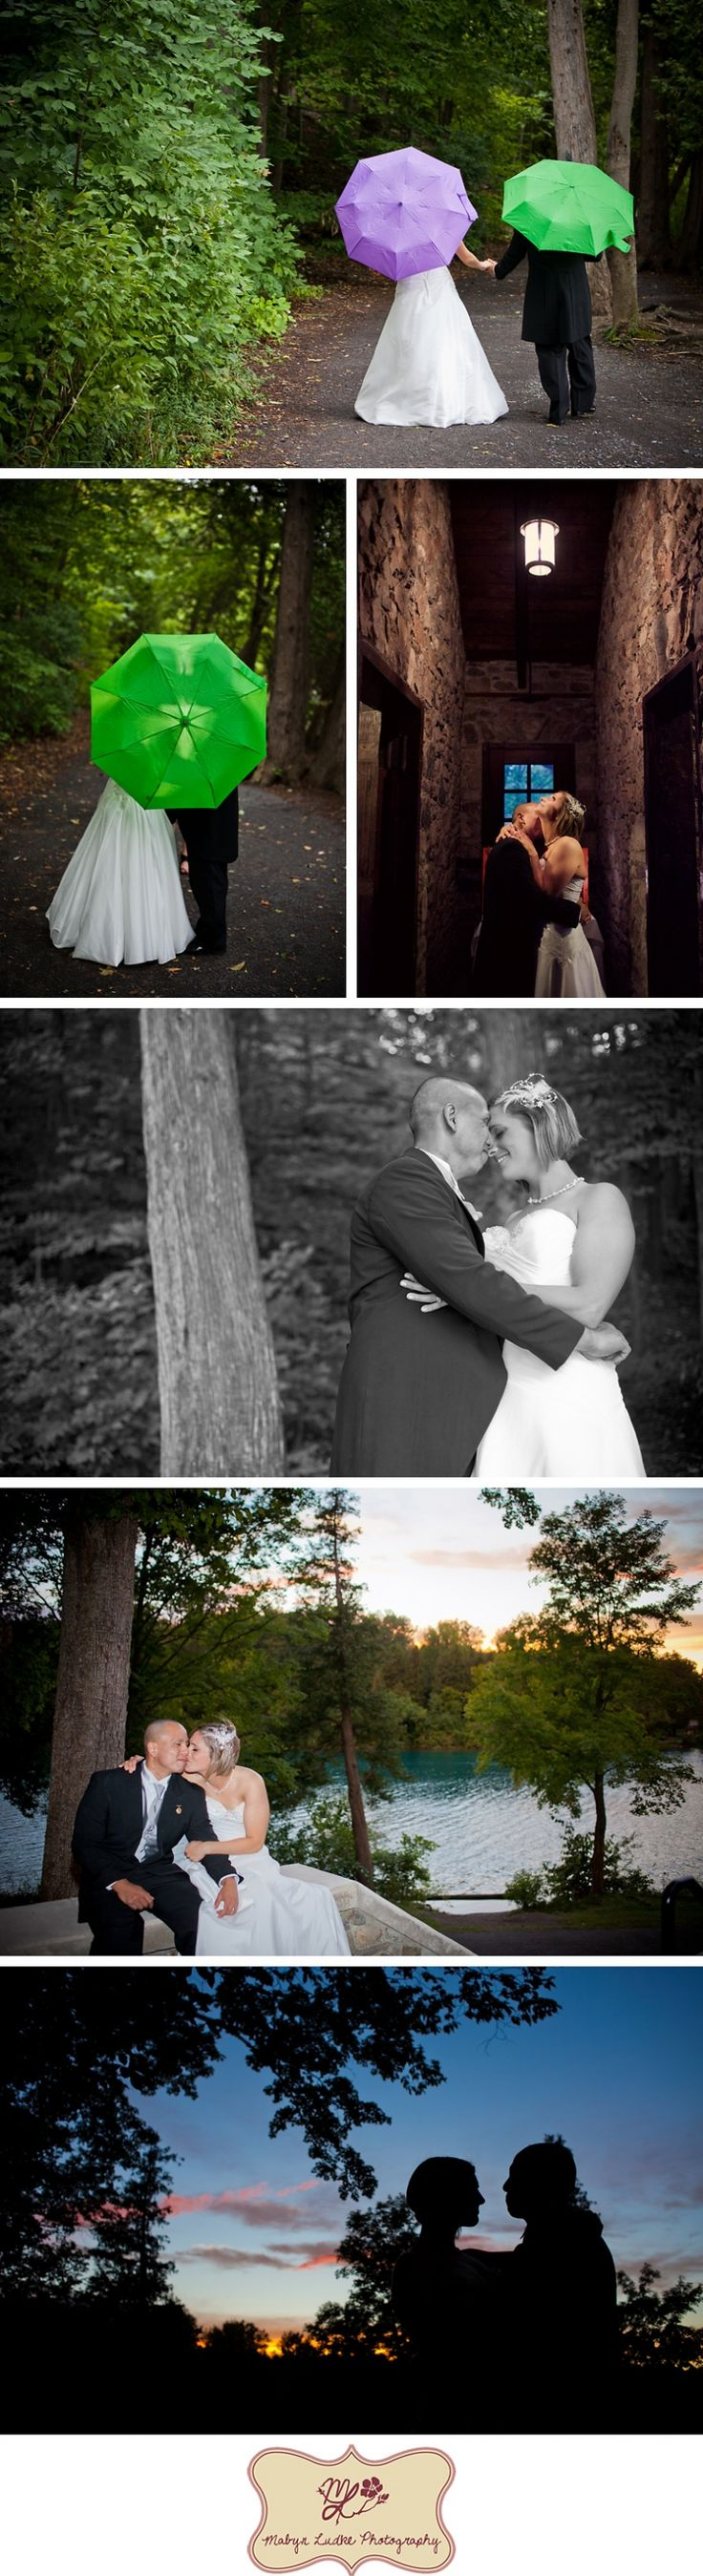 Green Lakes State Park Fayetteville, NY Wedding Photographer Mabyn Ludke  Photography